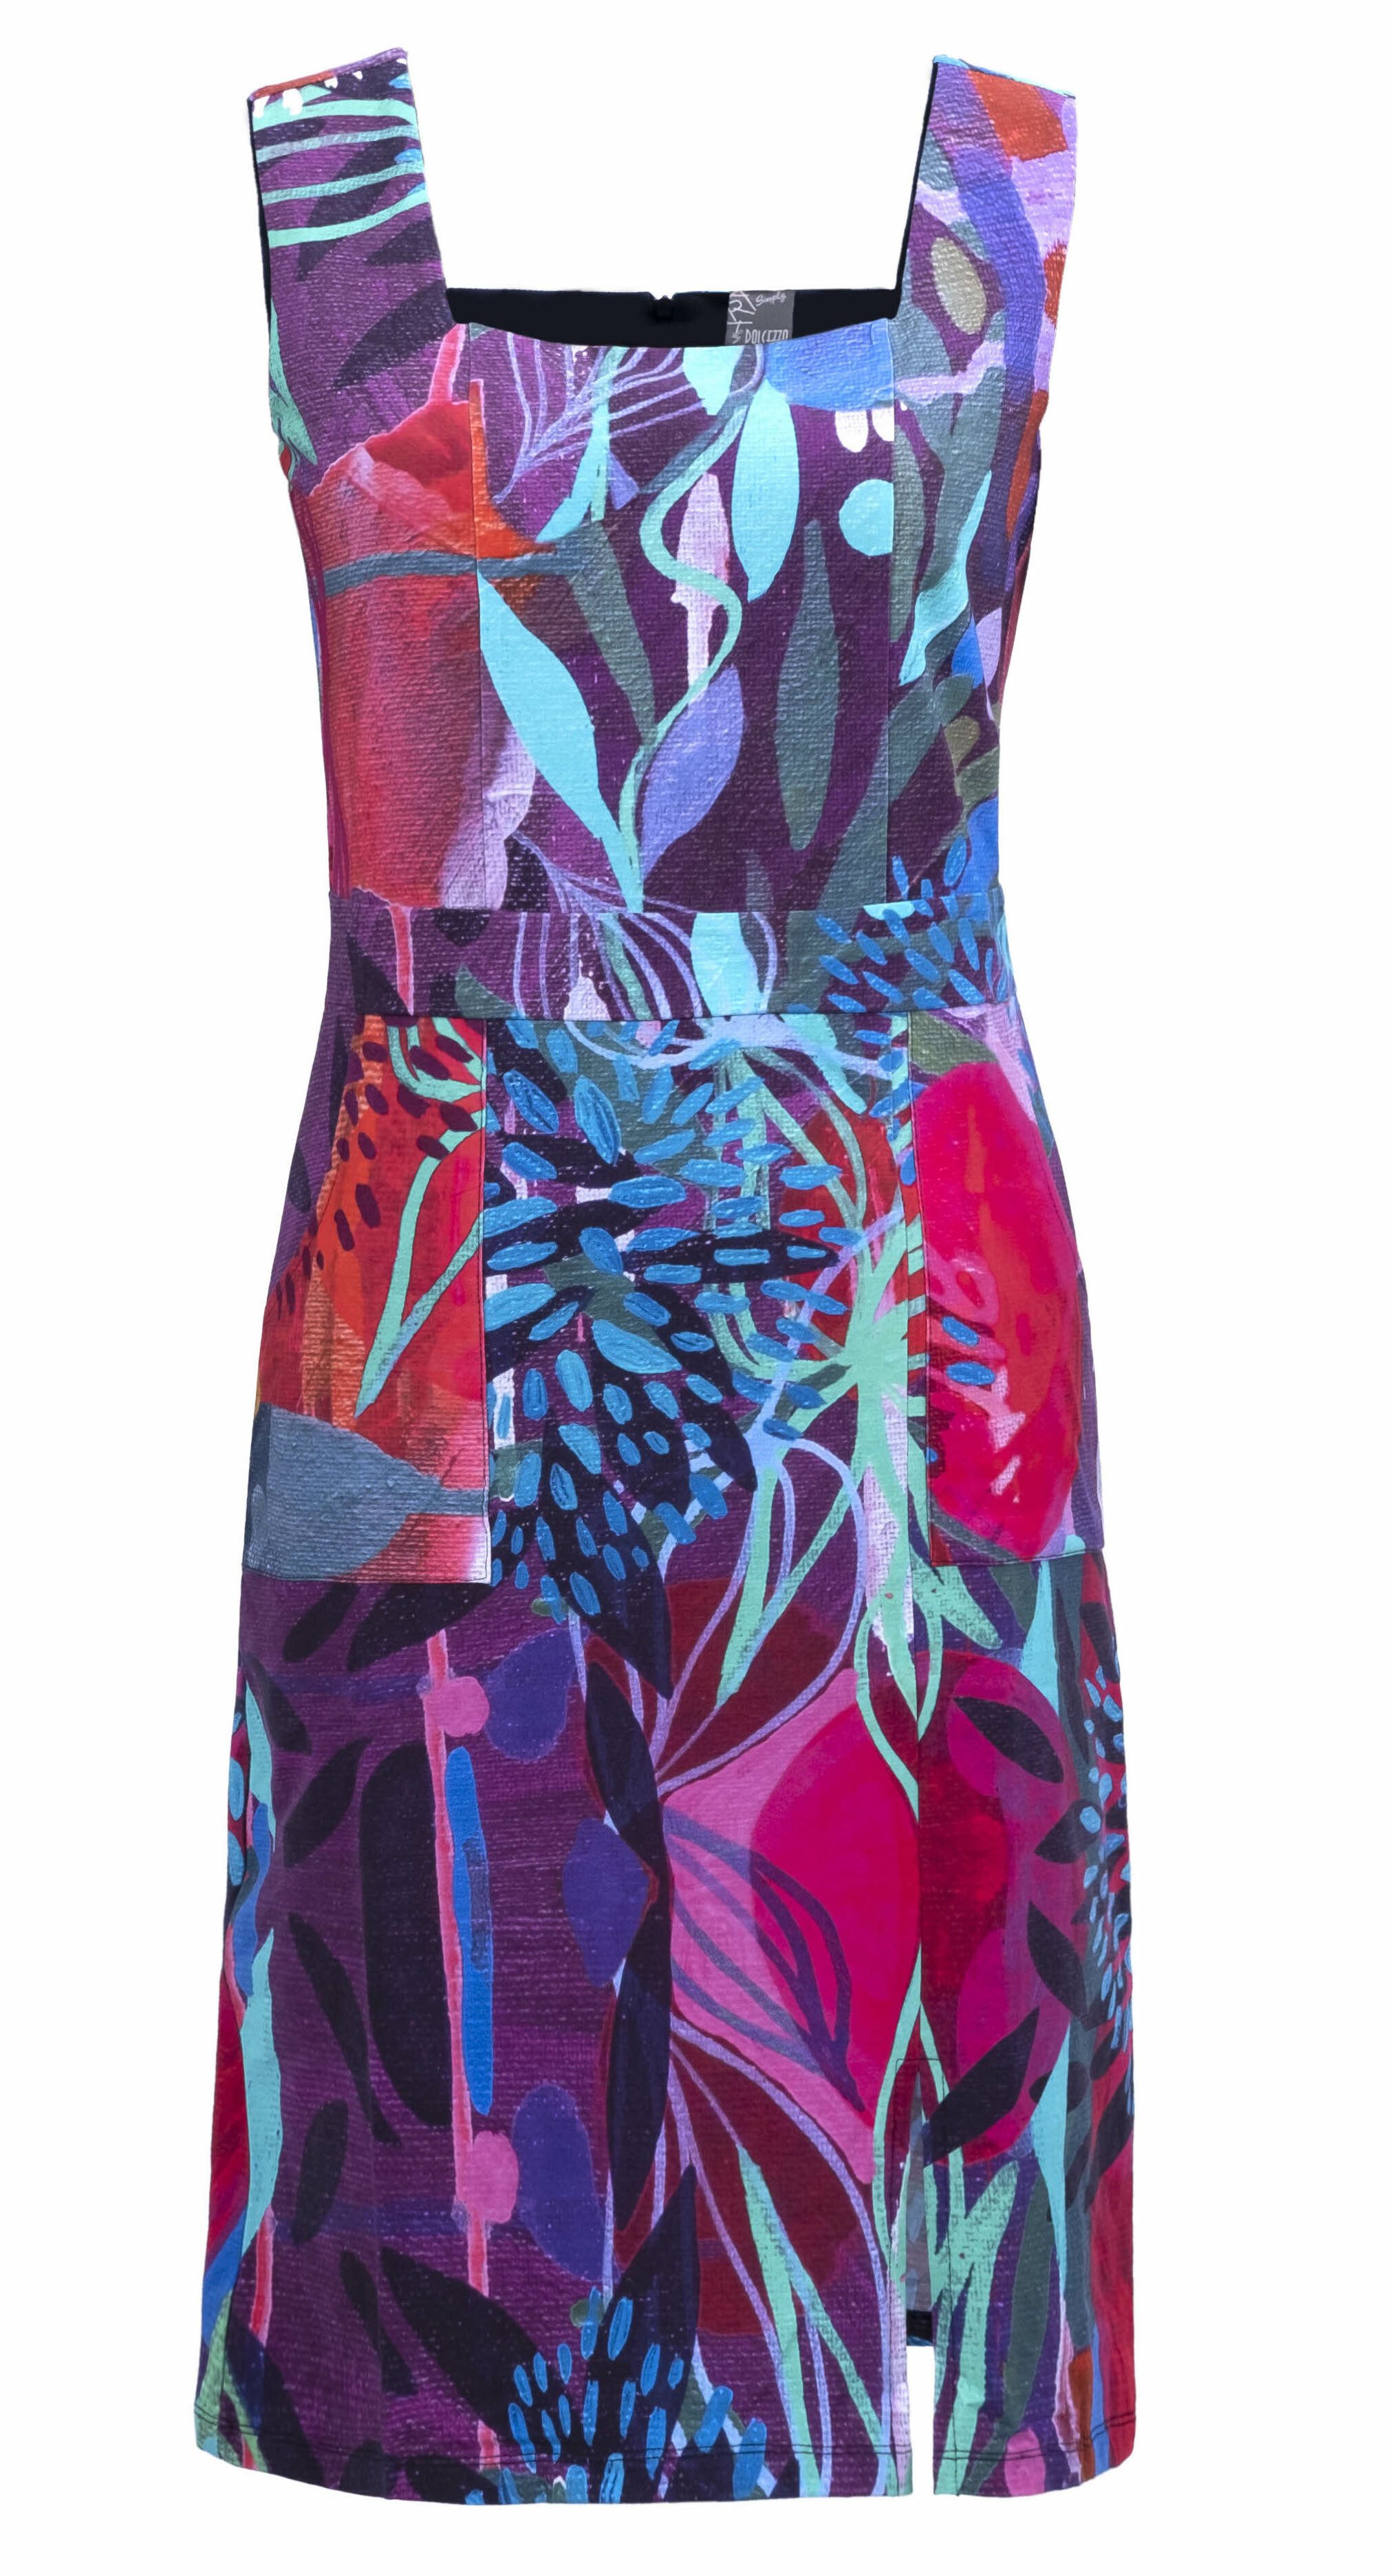 Simply Art Dolcezza: Color & Joy Tangle Of Leaves Abstract Art Midi Dress (2 Left!)